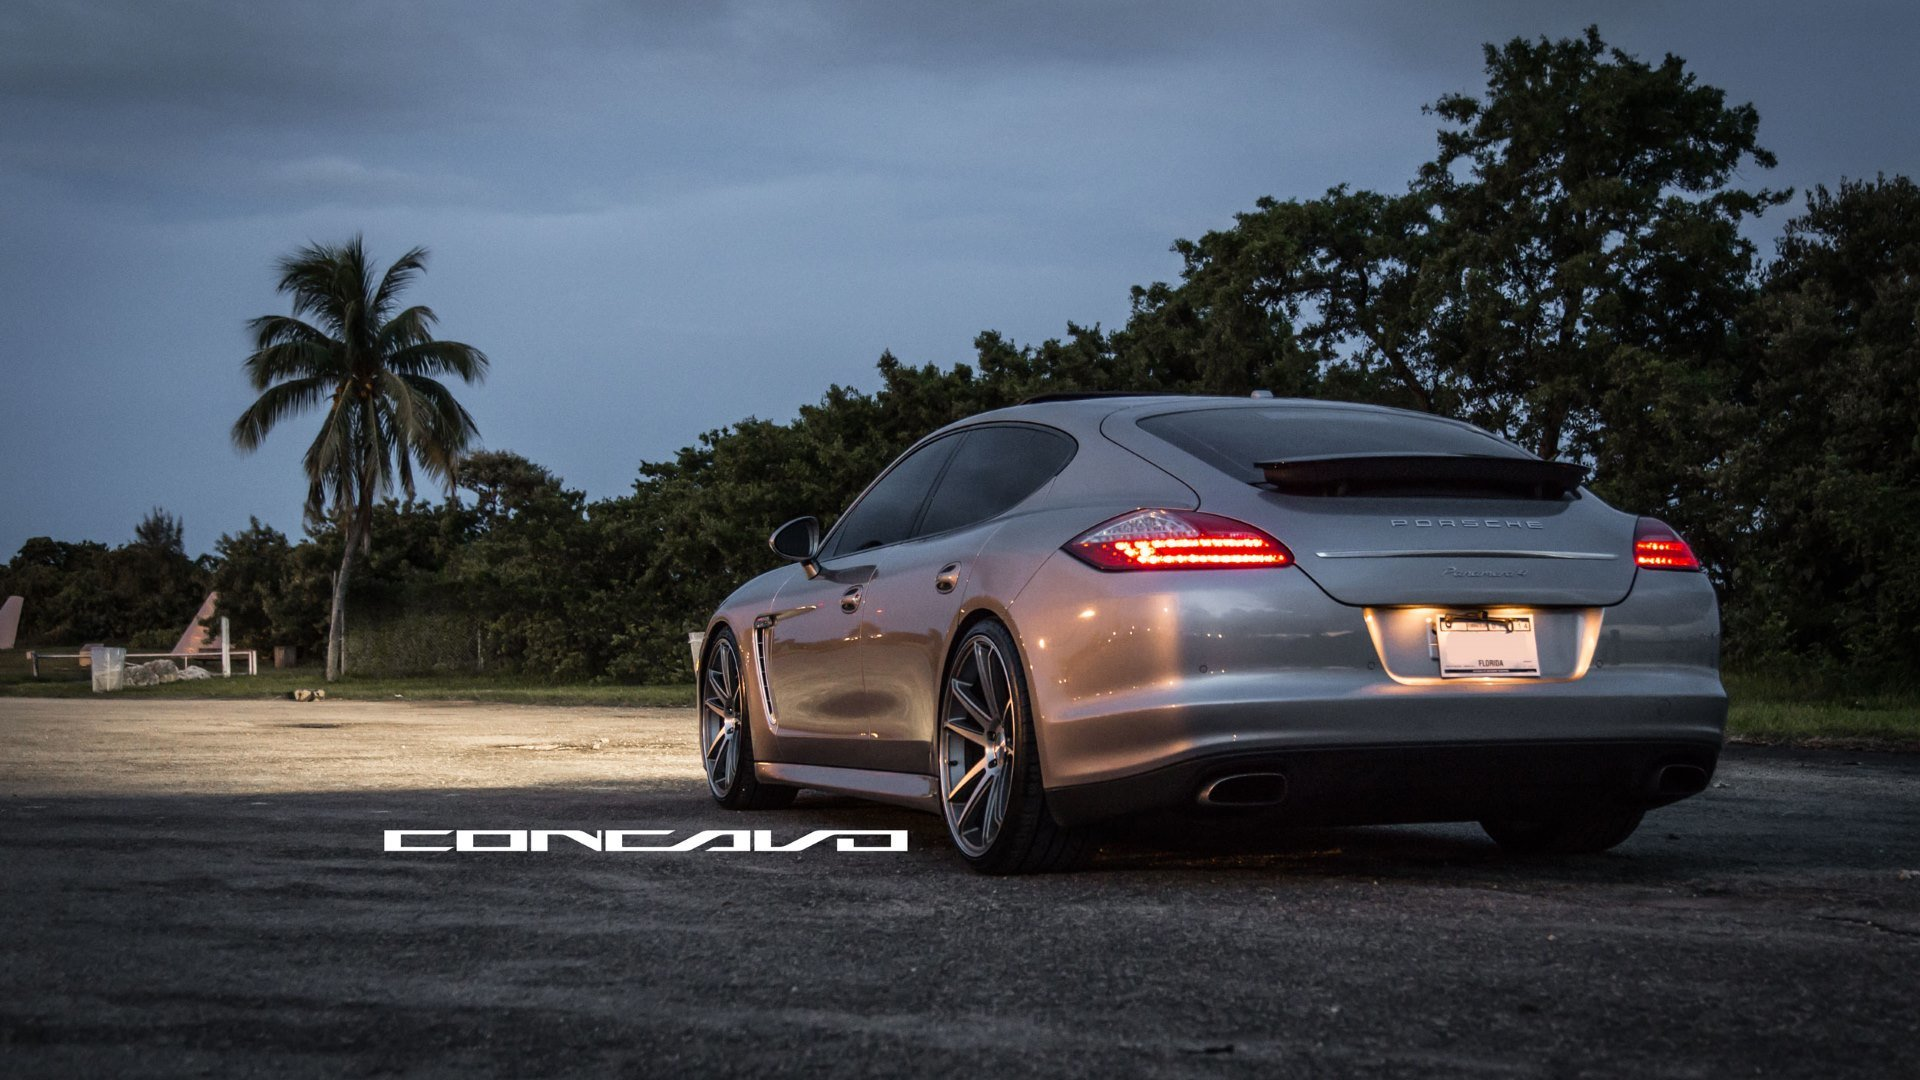 Download full hd 1920x1080 Porsche Panamera computer background ID:27806 for free